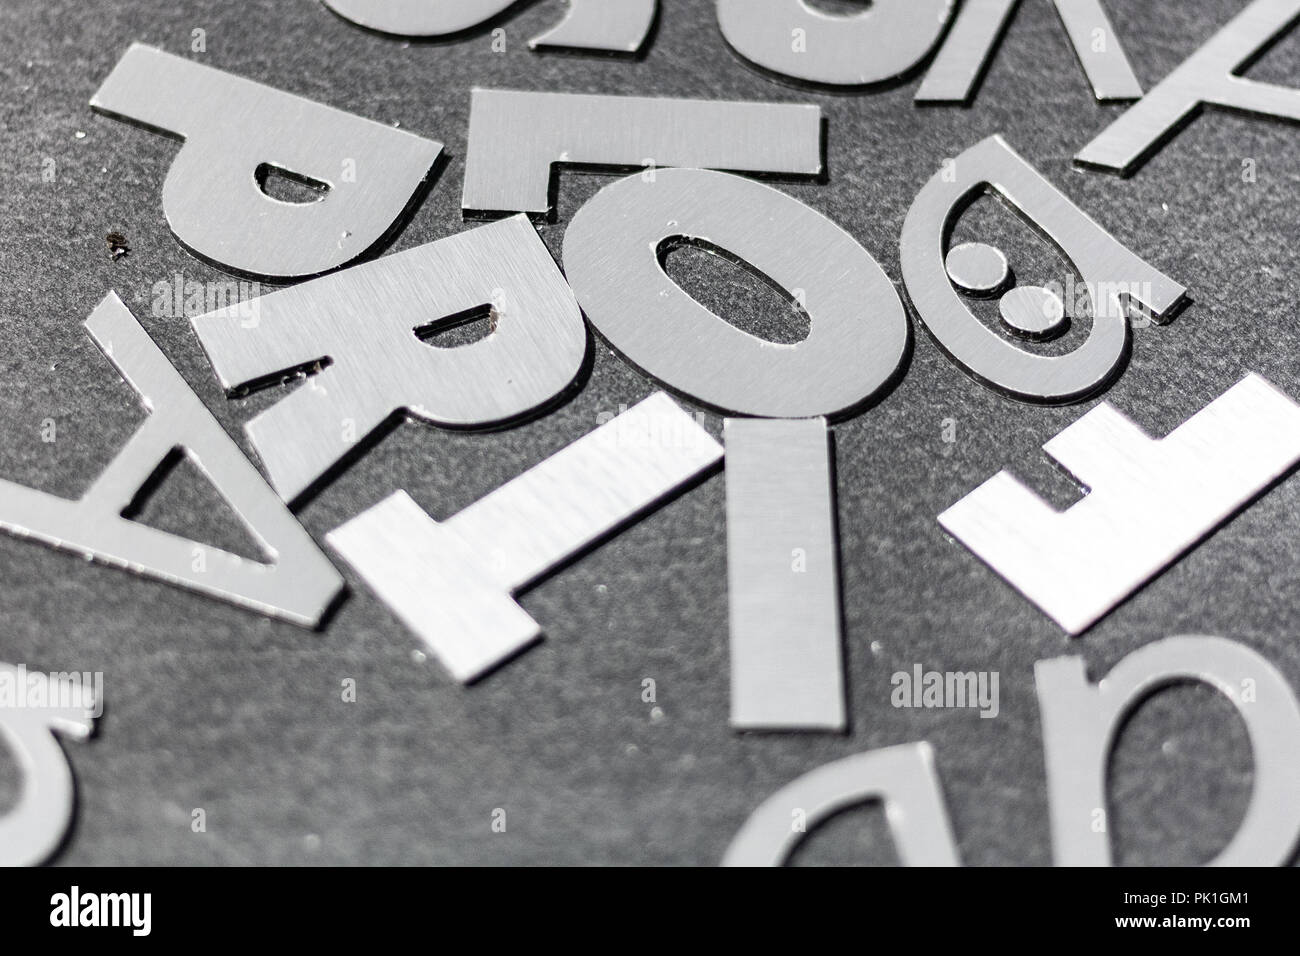 cutting out 3d steel letters for commercial advertising in an